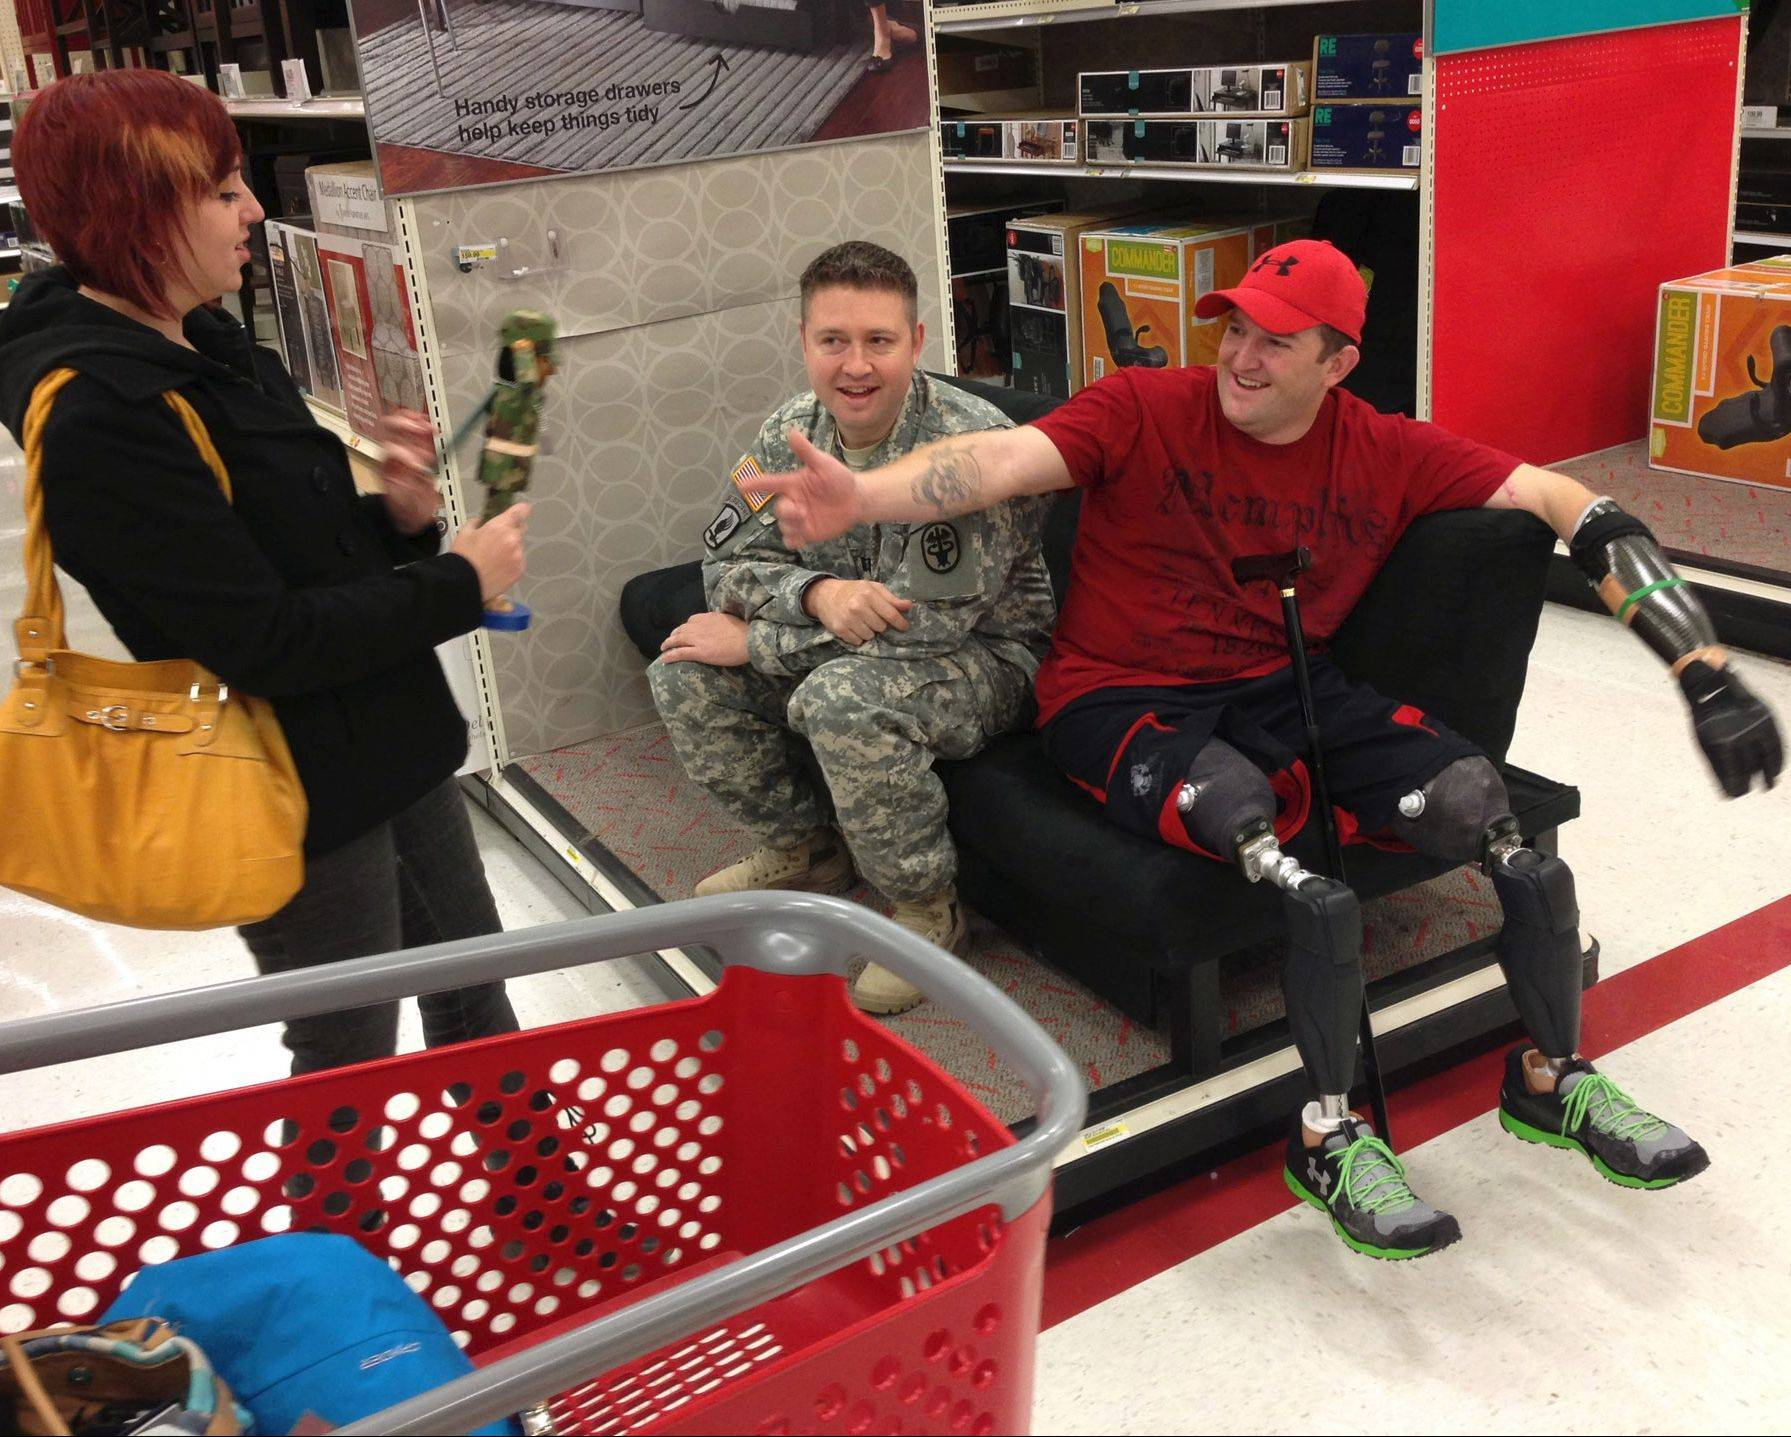 In a Target store, Captain Erik S. Johnson, center, and Sergeant Monte Bernardo and Bernardo's sister, Stella Shafer, joke about a nutcracker doll dressed in military fatigues who happens to be missing one arm.